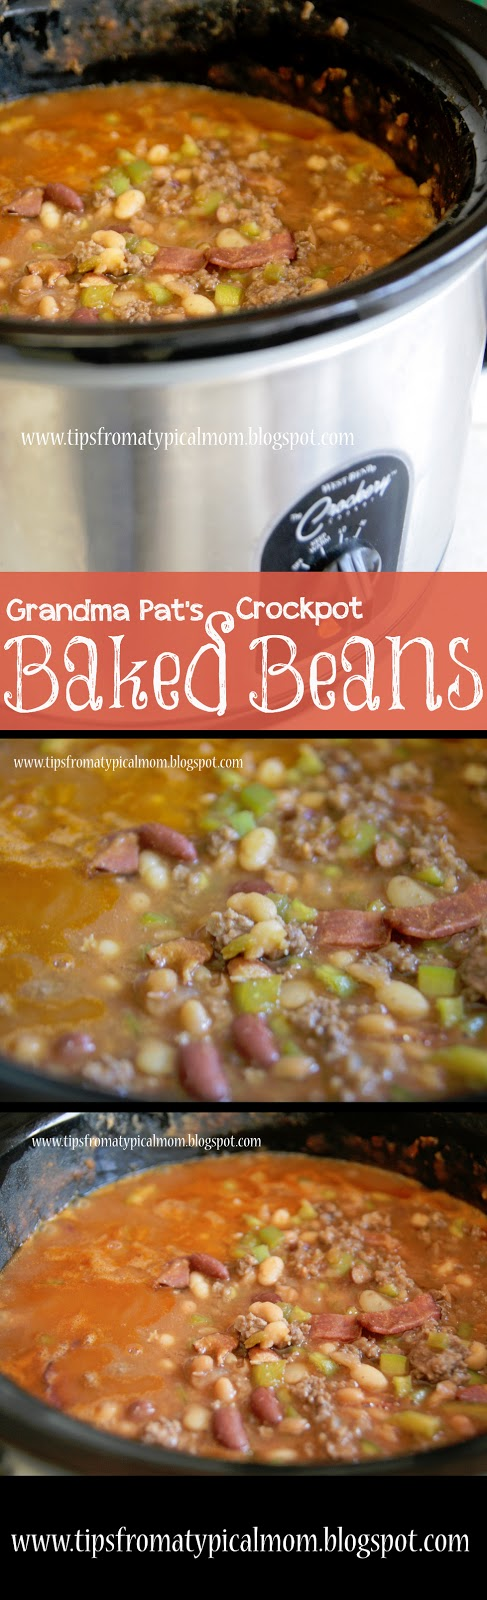 Grandma Pat's Crockpot Baked Beans - Tips from a Typical Mom